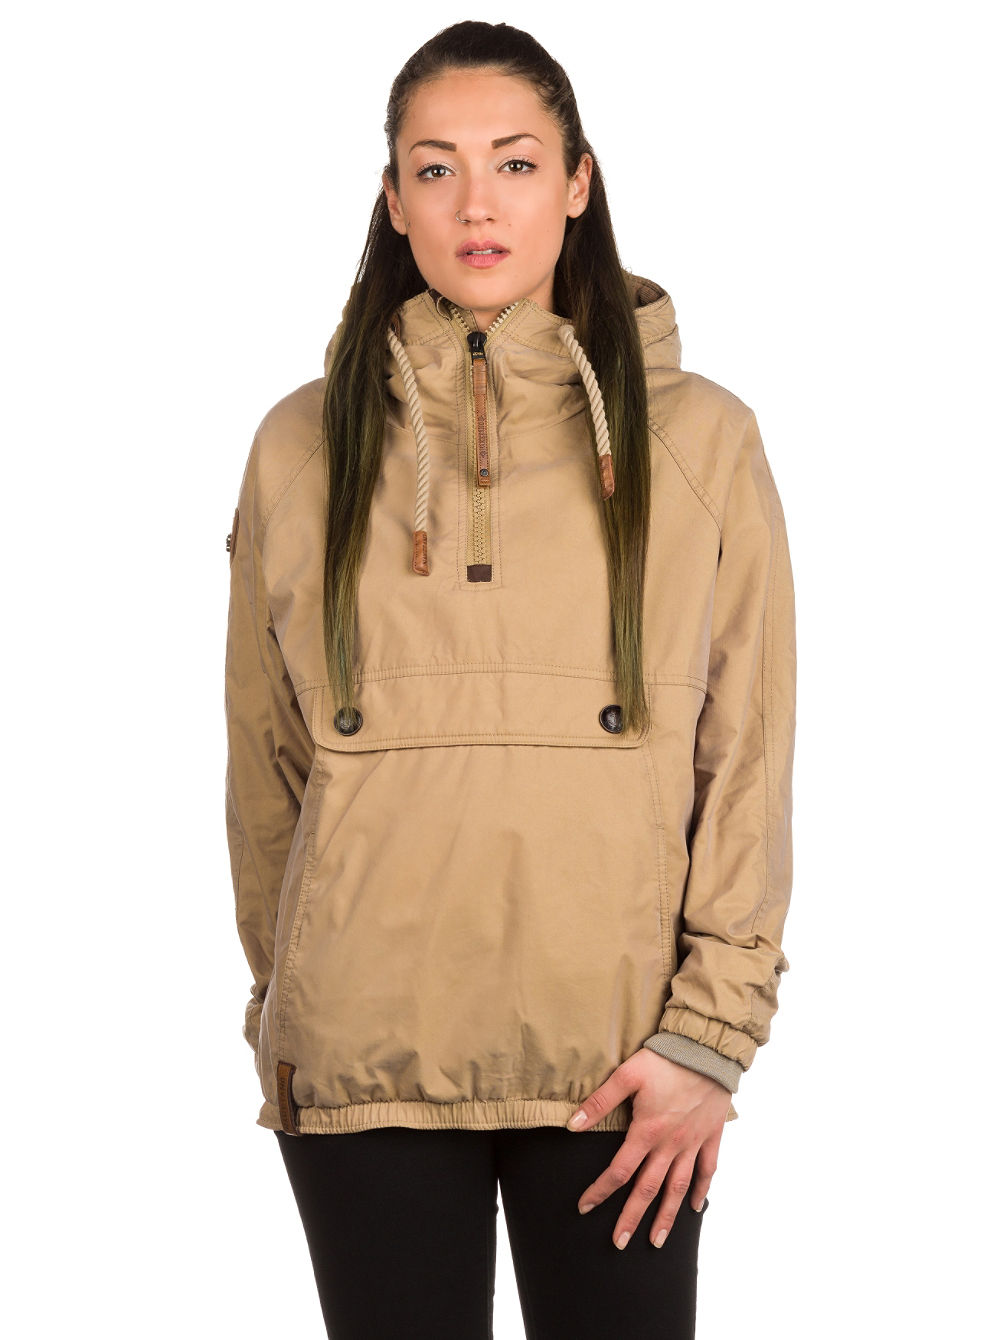 Benficker Nuno Jacket